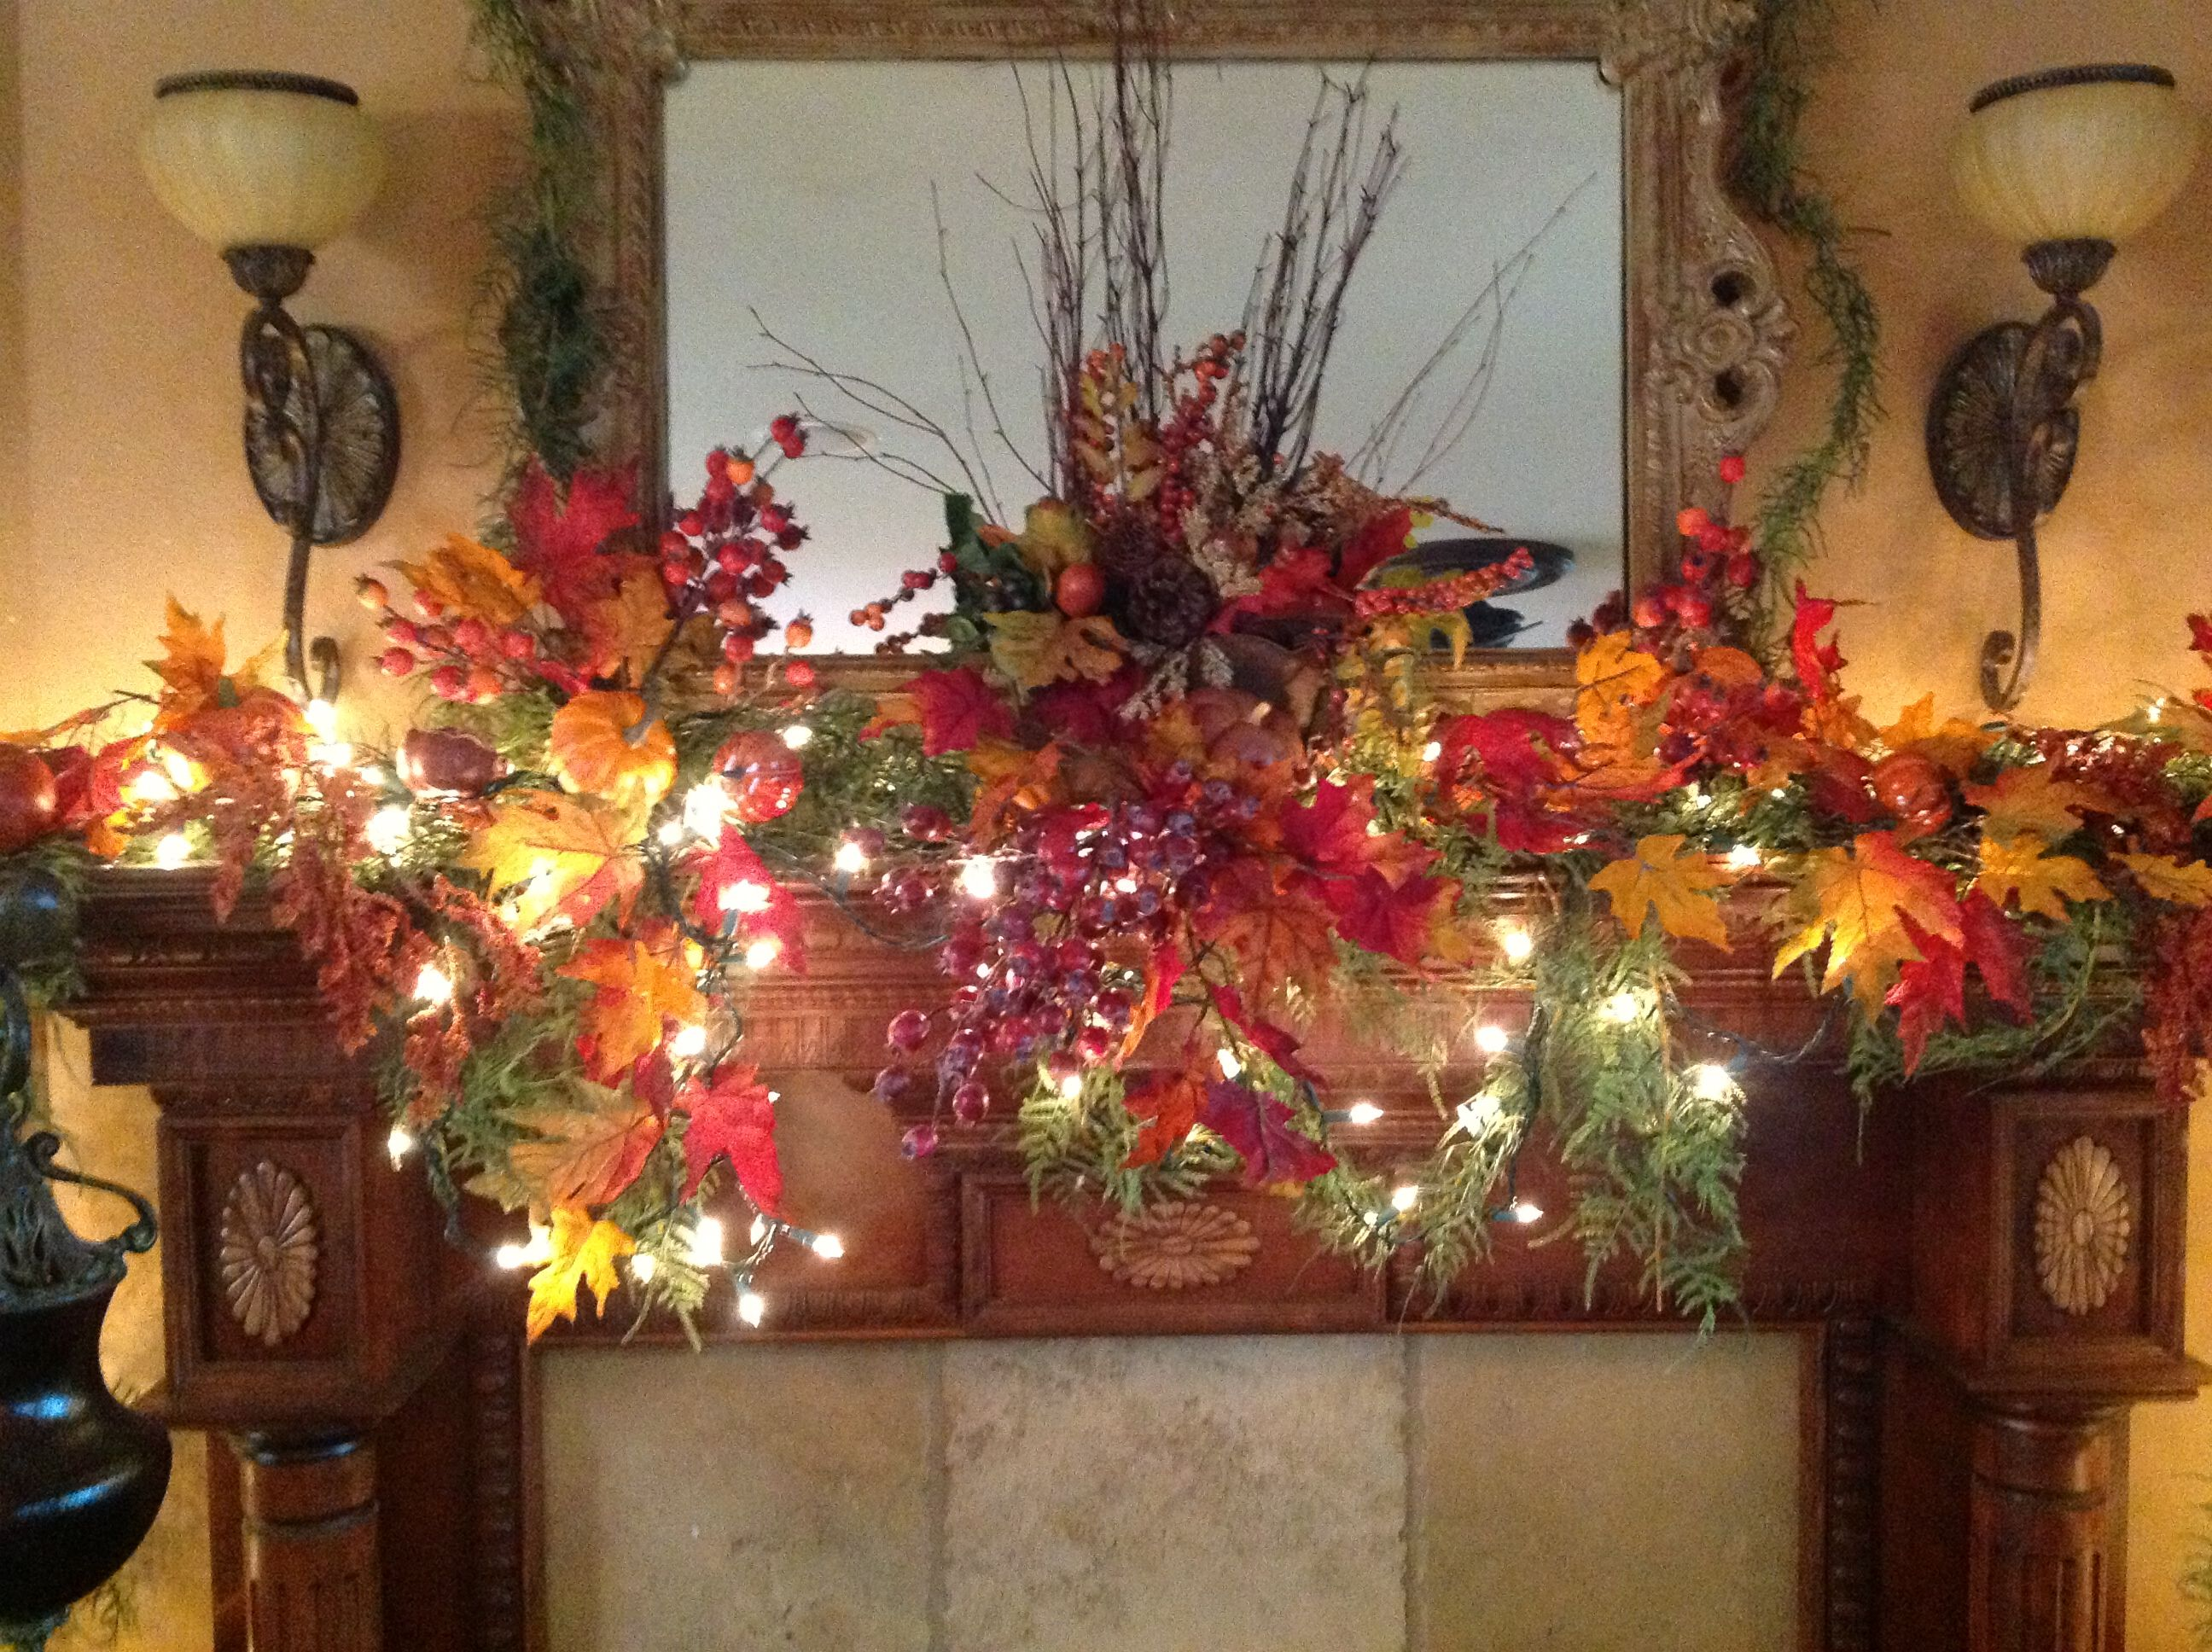 Christmas Mantel Decorations Garland Fireplace Mantel Design